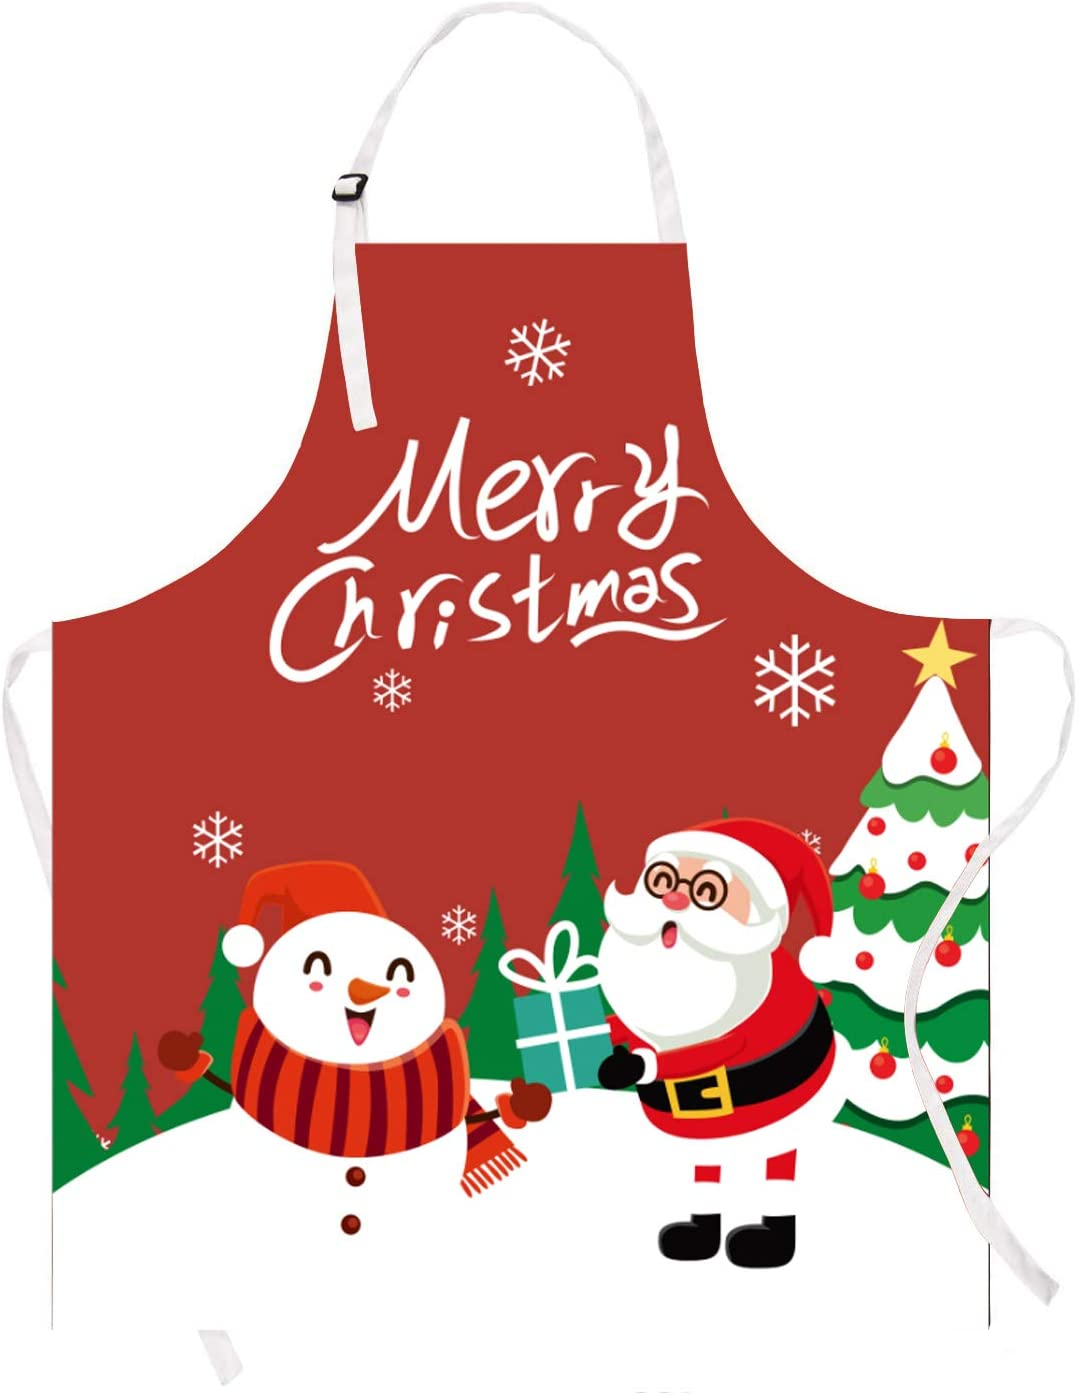 Claswcalor Merry Christmas Kids Apron, Cute Snowman Apron for Girls Boys Toddler Children, Red Waterproof Kitchen Apron for Kids Cooking, Baking, Crafting, Gardening, BBQ, 19.7